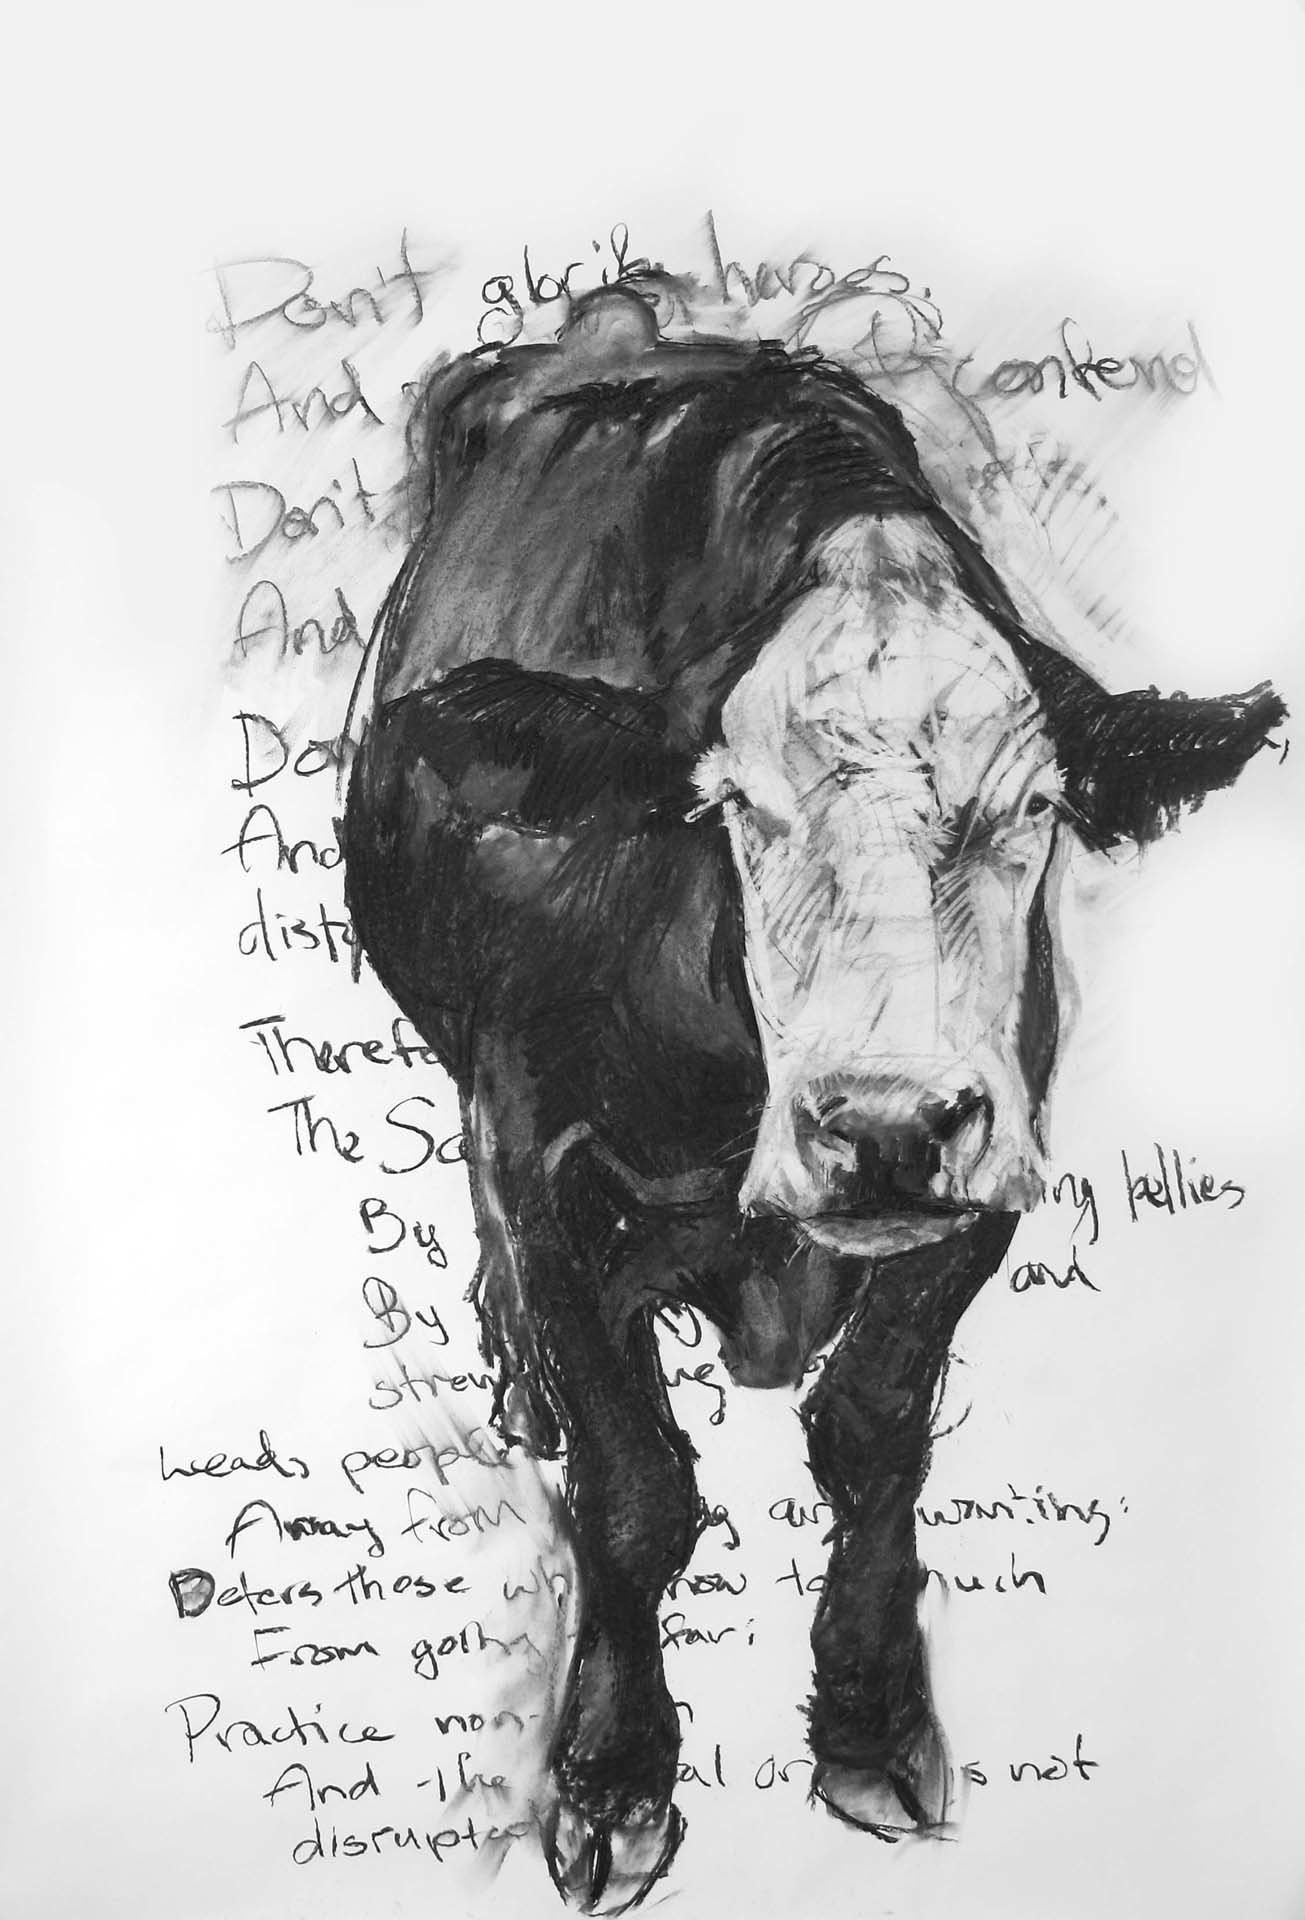 Ling, 60x42 inches, Charcoal on Paper, 2010